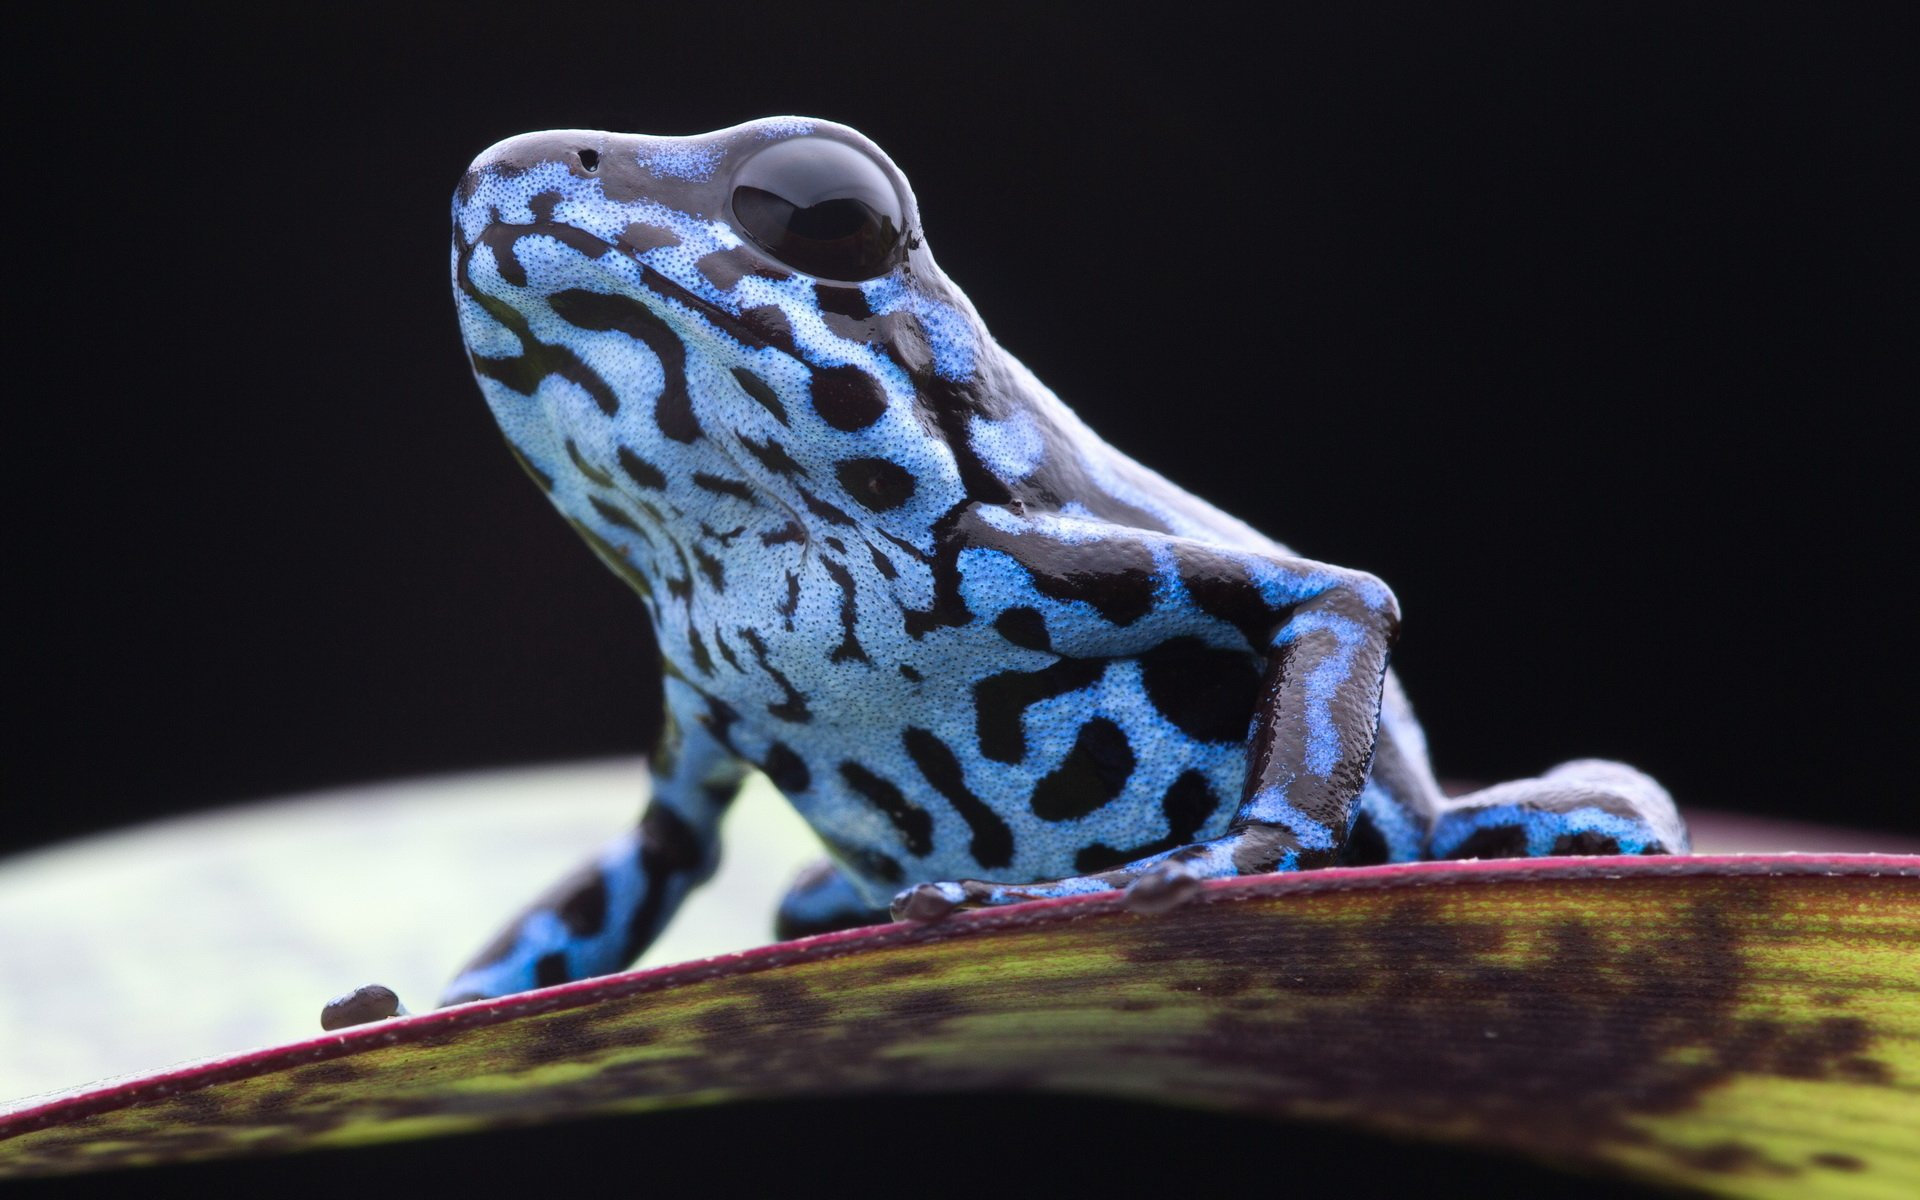 Surface Pro 4 Hd Wallpaper Poison Dart Frog Full Hd Wallpaper And Background Image